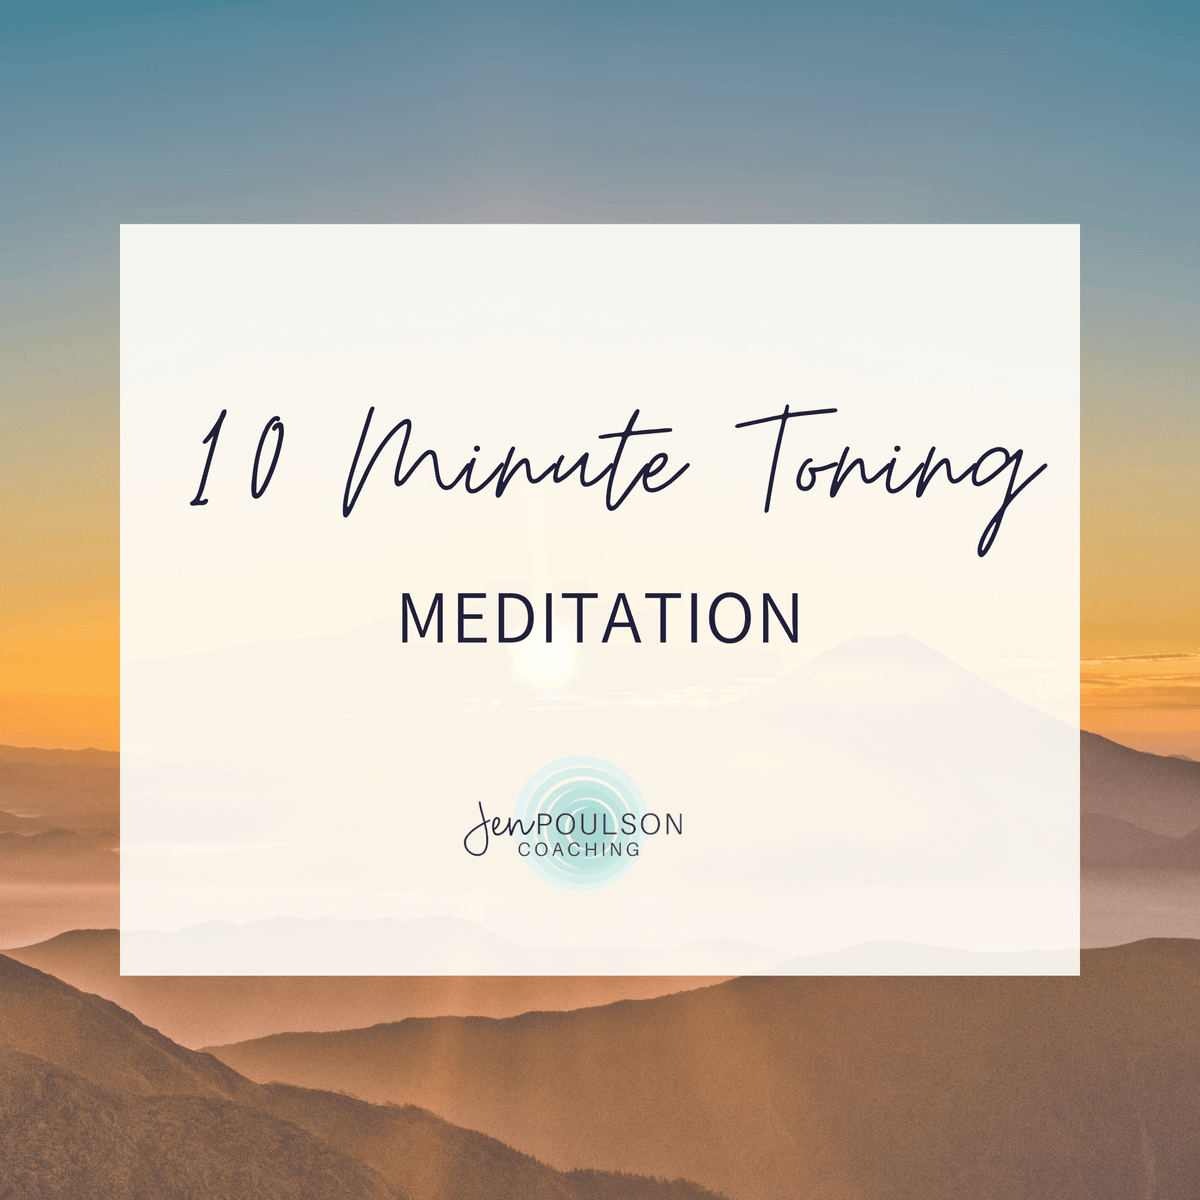 10 Minute Toning Meditation